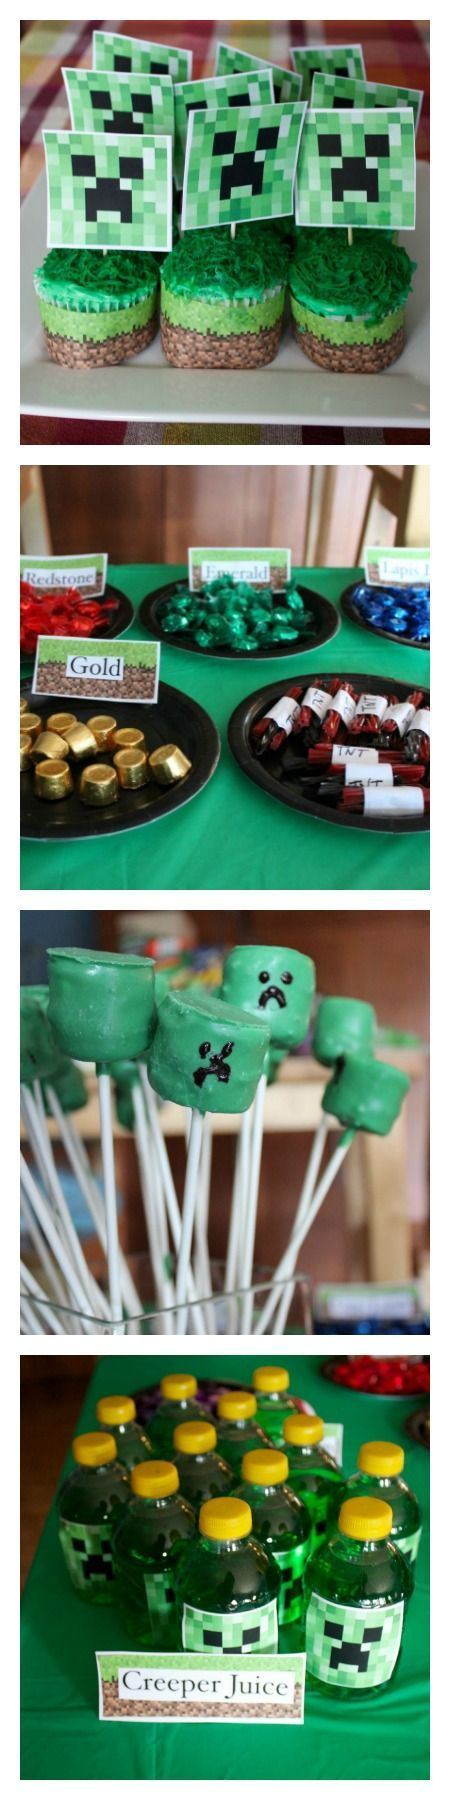 Minecraft Party Ideas that will blow your kiddos mines. :)